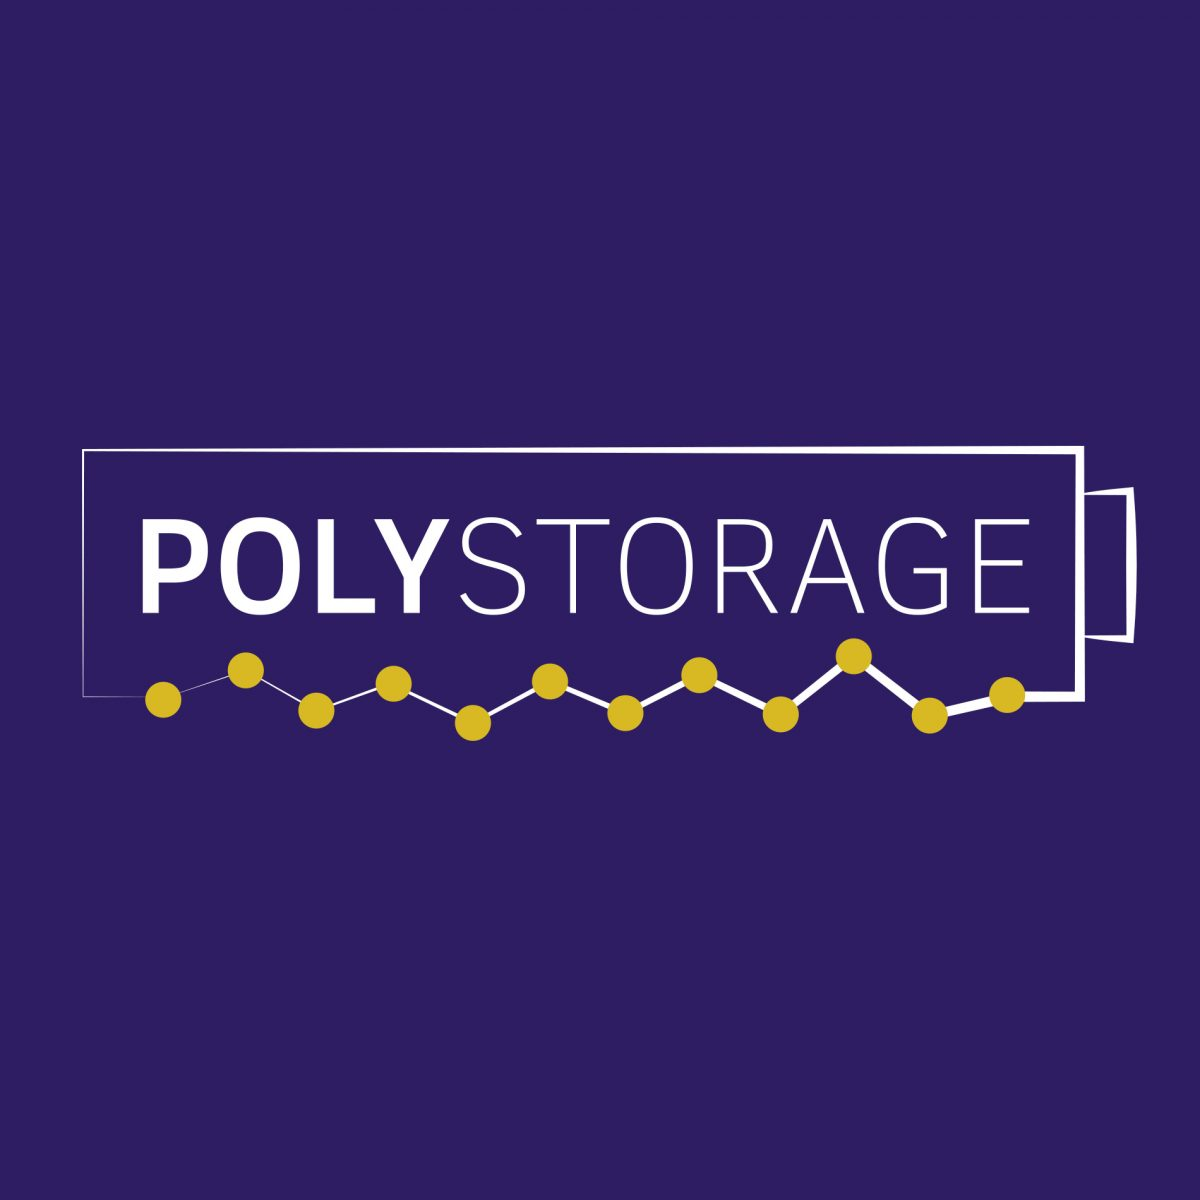 """POLYSTORAGE summer school on """"Chemistry of Electric Storage Materials"""" in Uppsala, Sweden; 14th till 18th June 2021"""